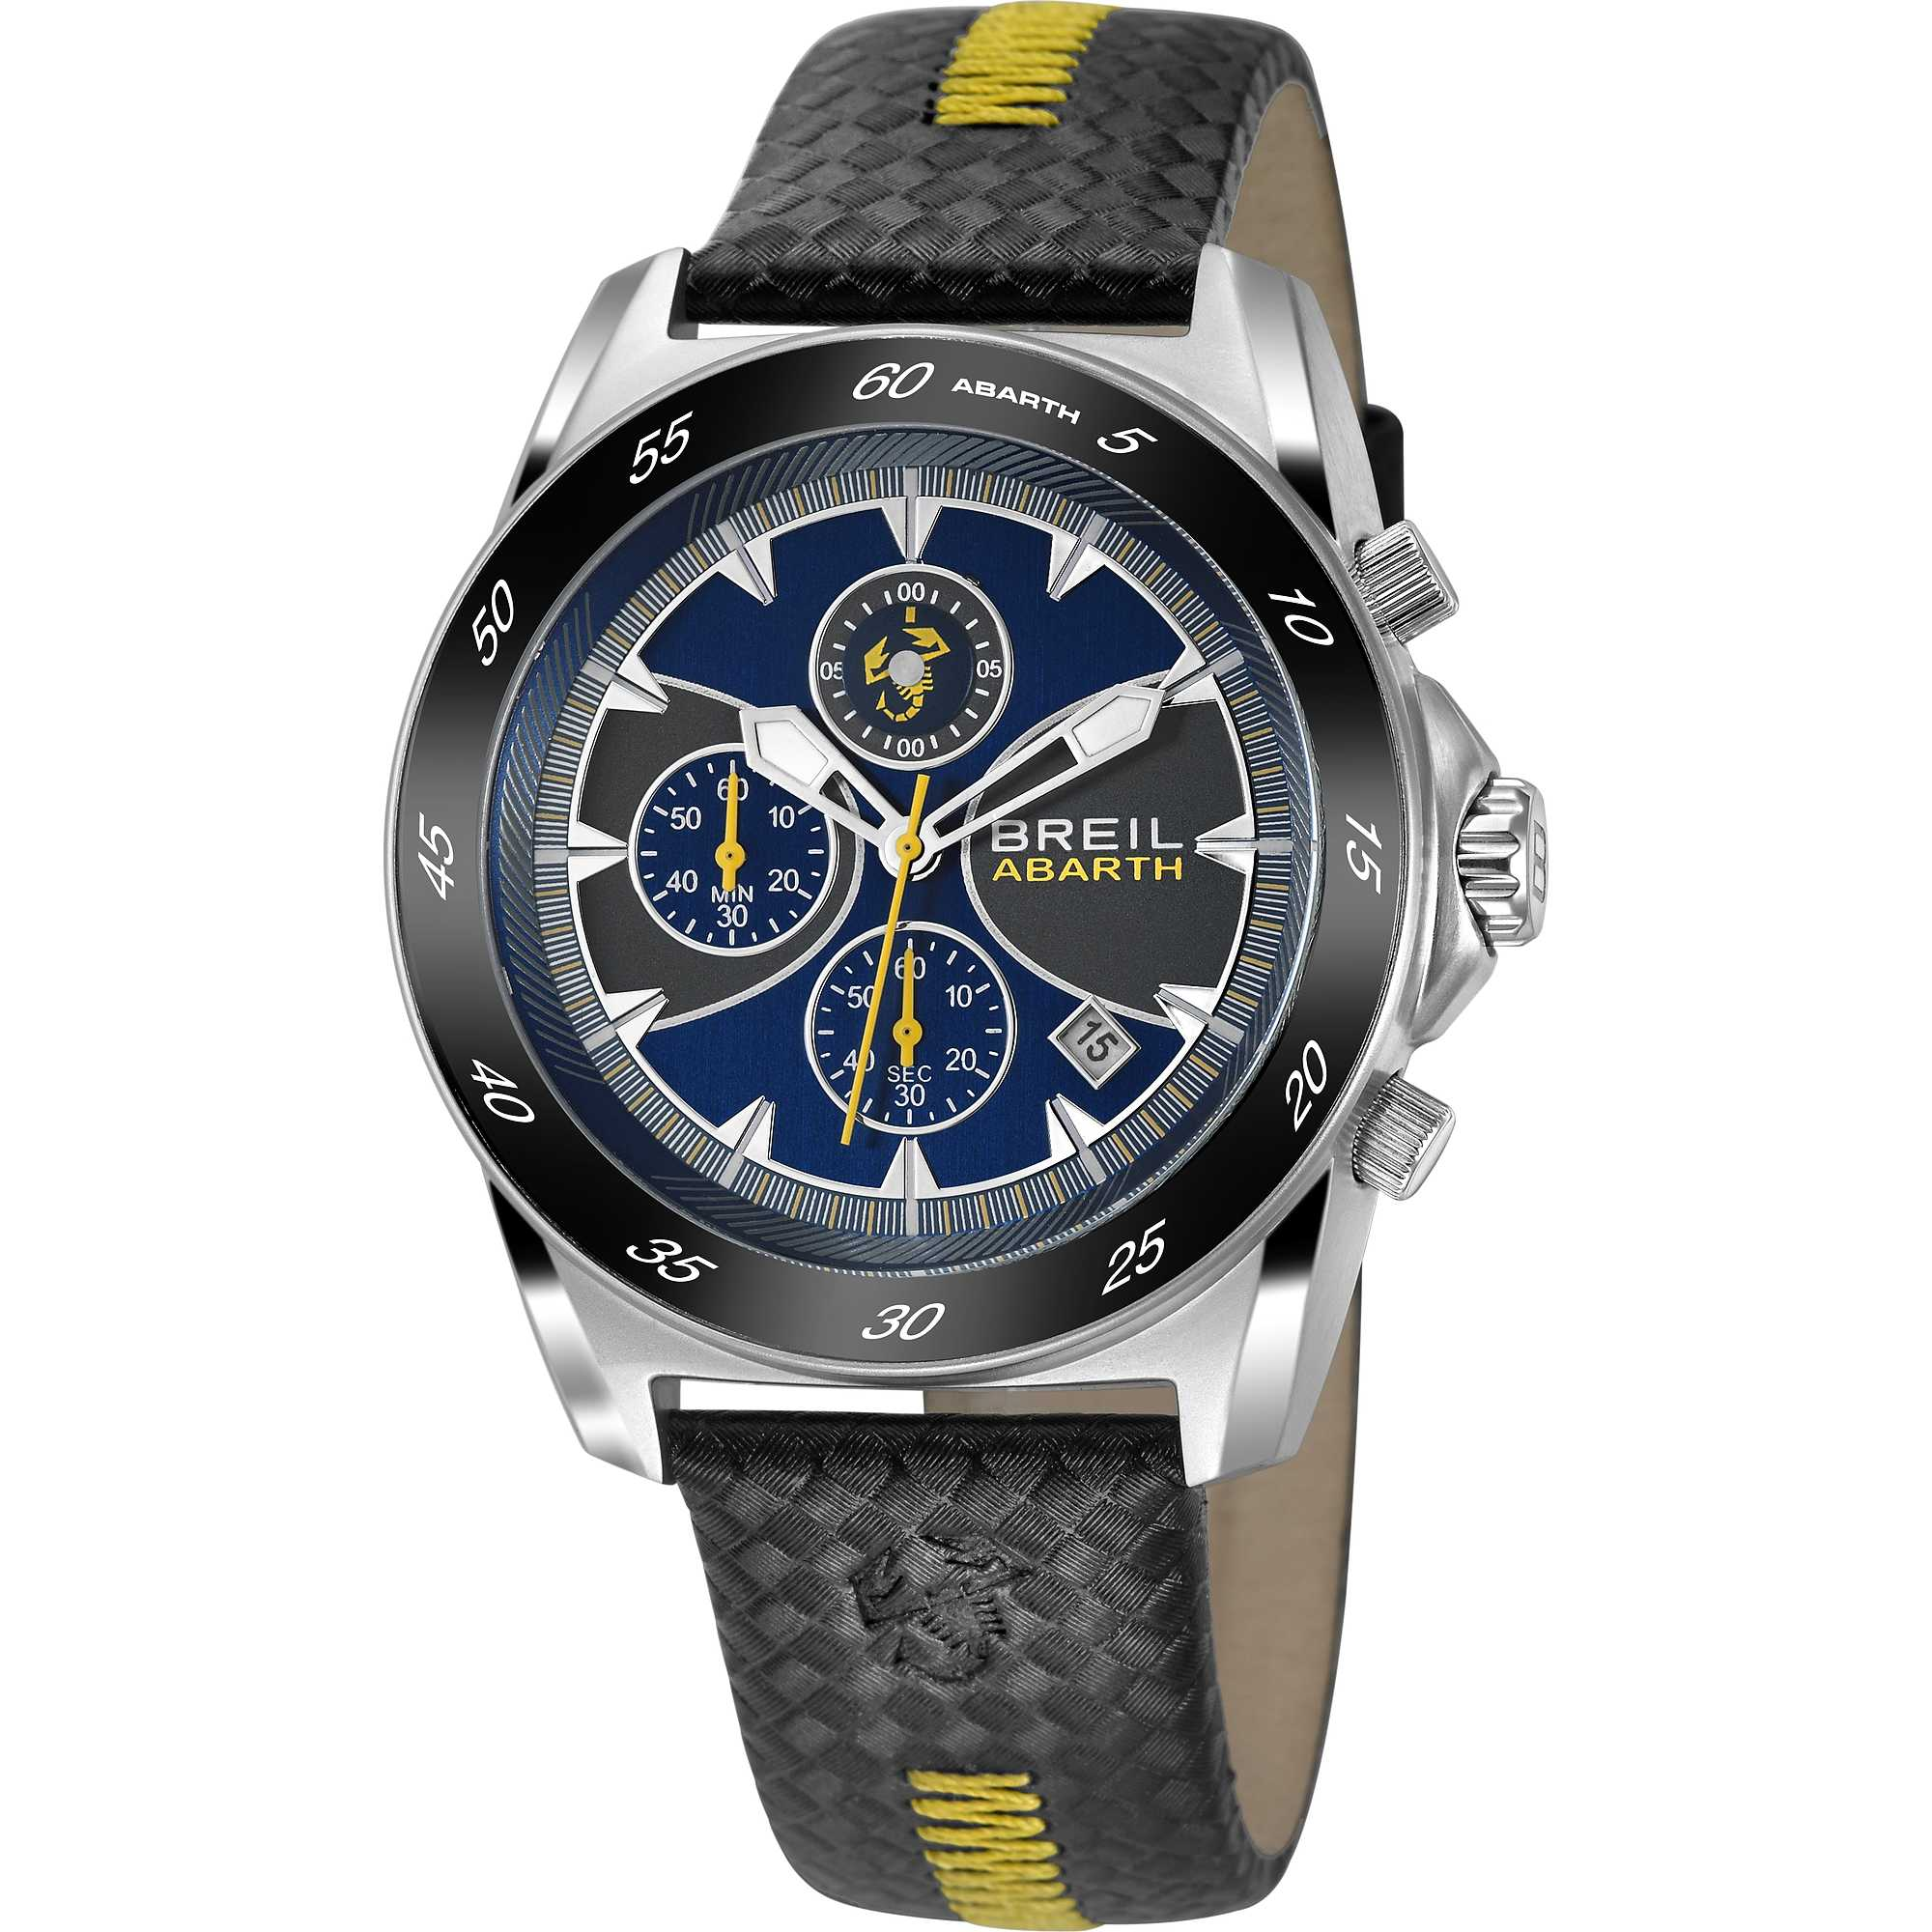 montre chronographe homme breil abarth tw1246 chronographes breil. Black Bedroom Furniture Sets. Home Design Ideas